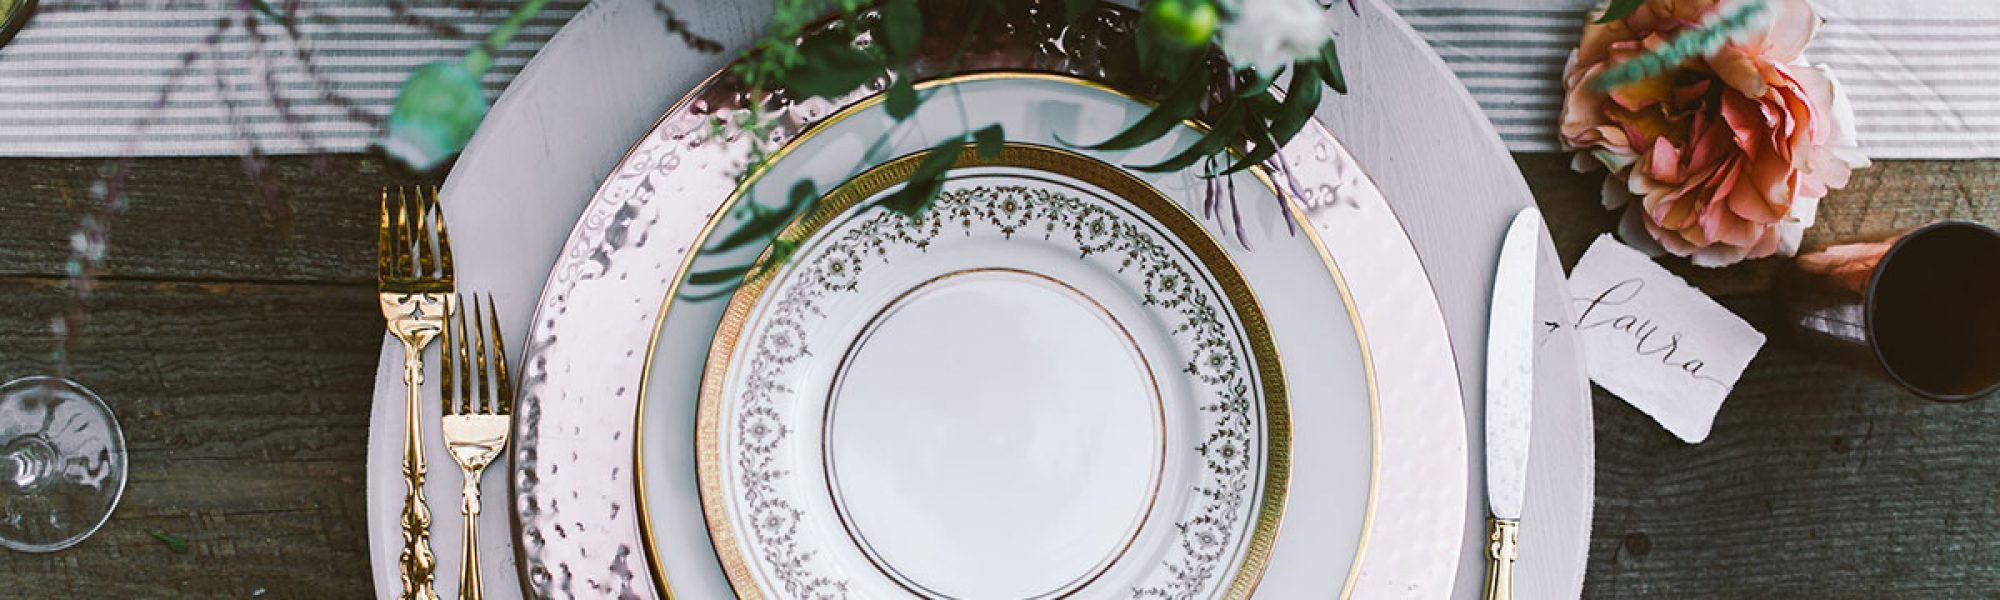 wedding rentals, plates, utensils, flatware